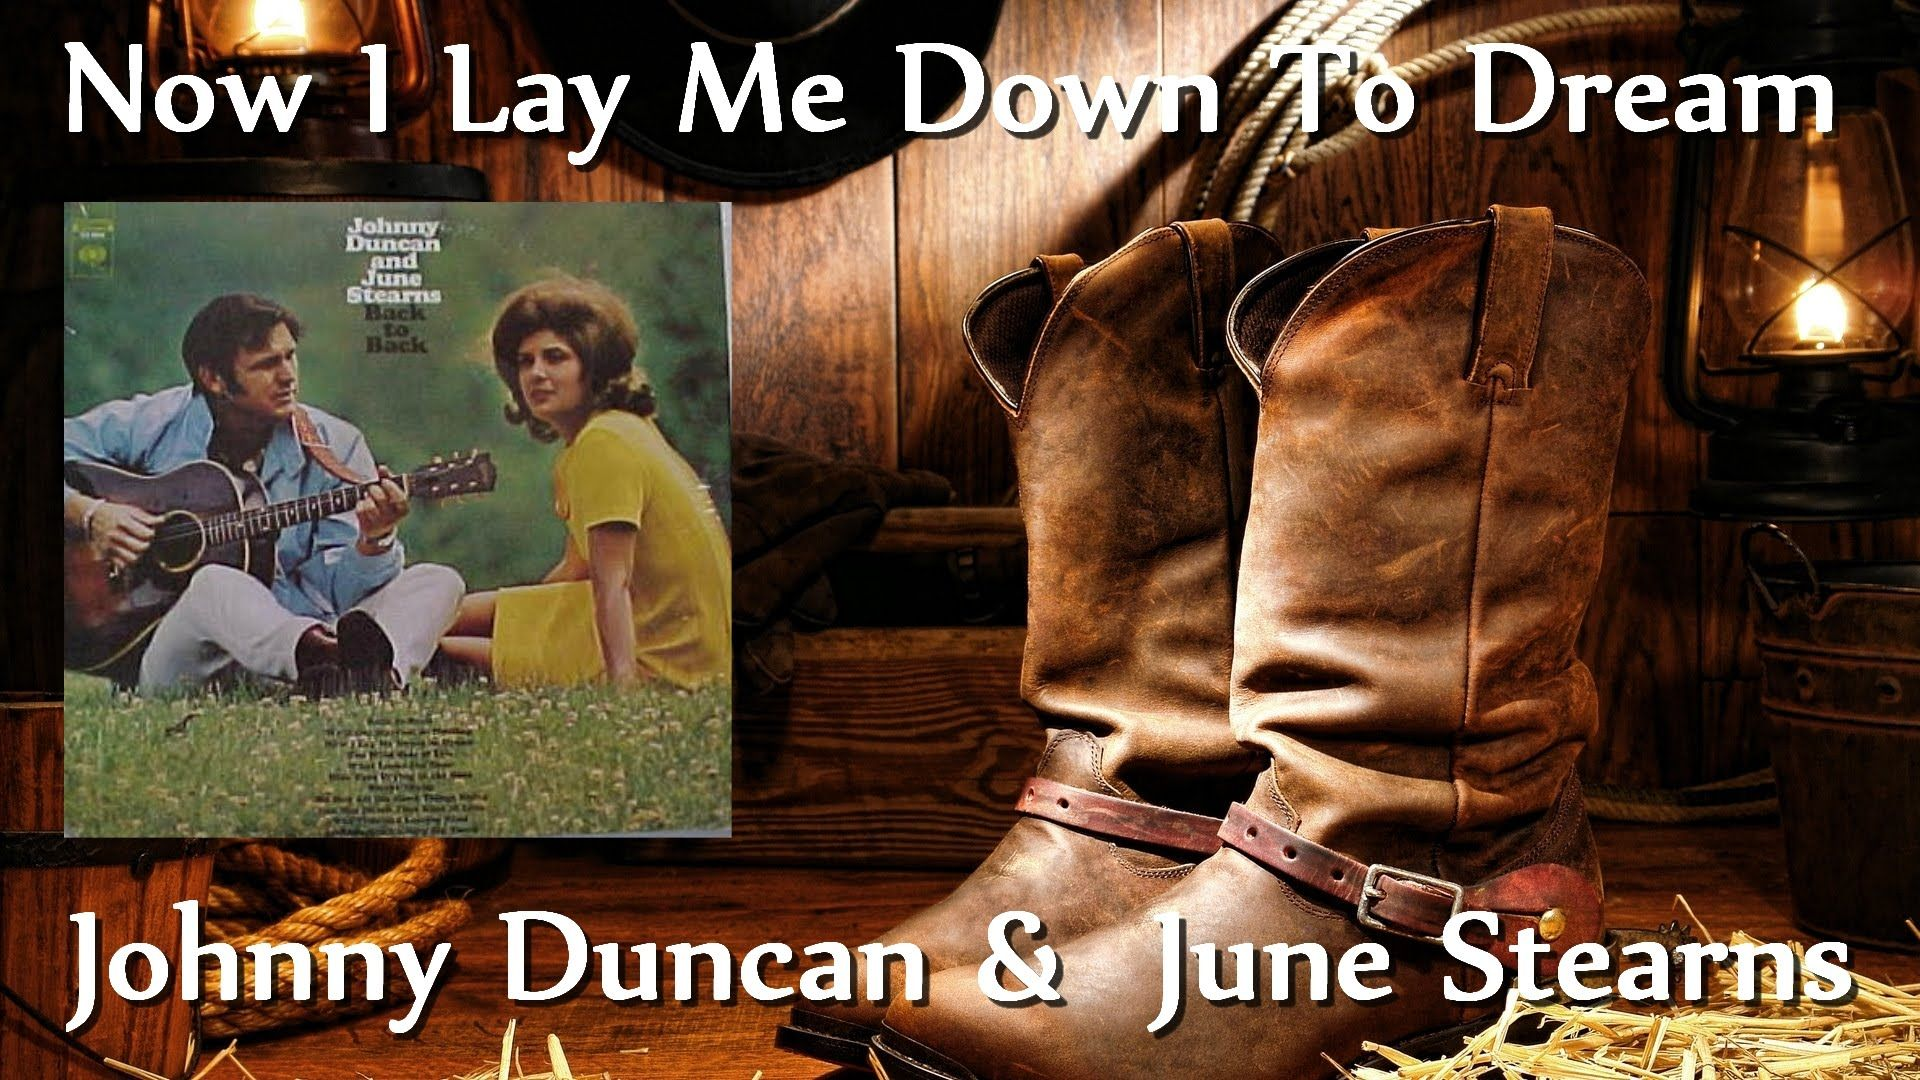 Johnny Duncan & June Stearns - Now I Lay Me Down To Dream